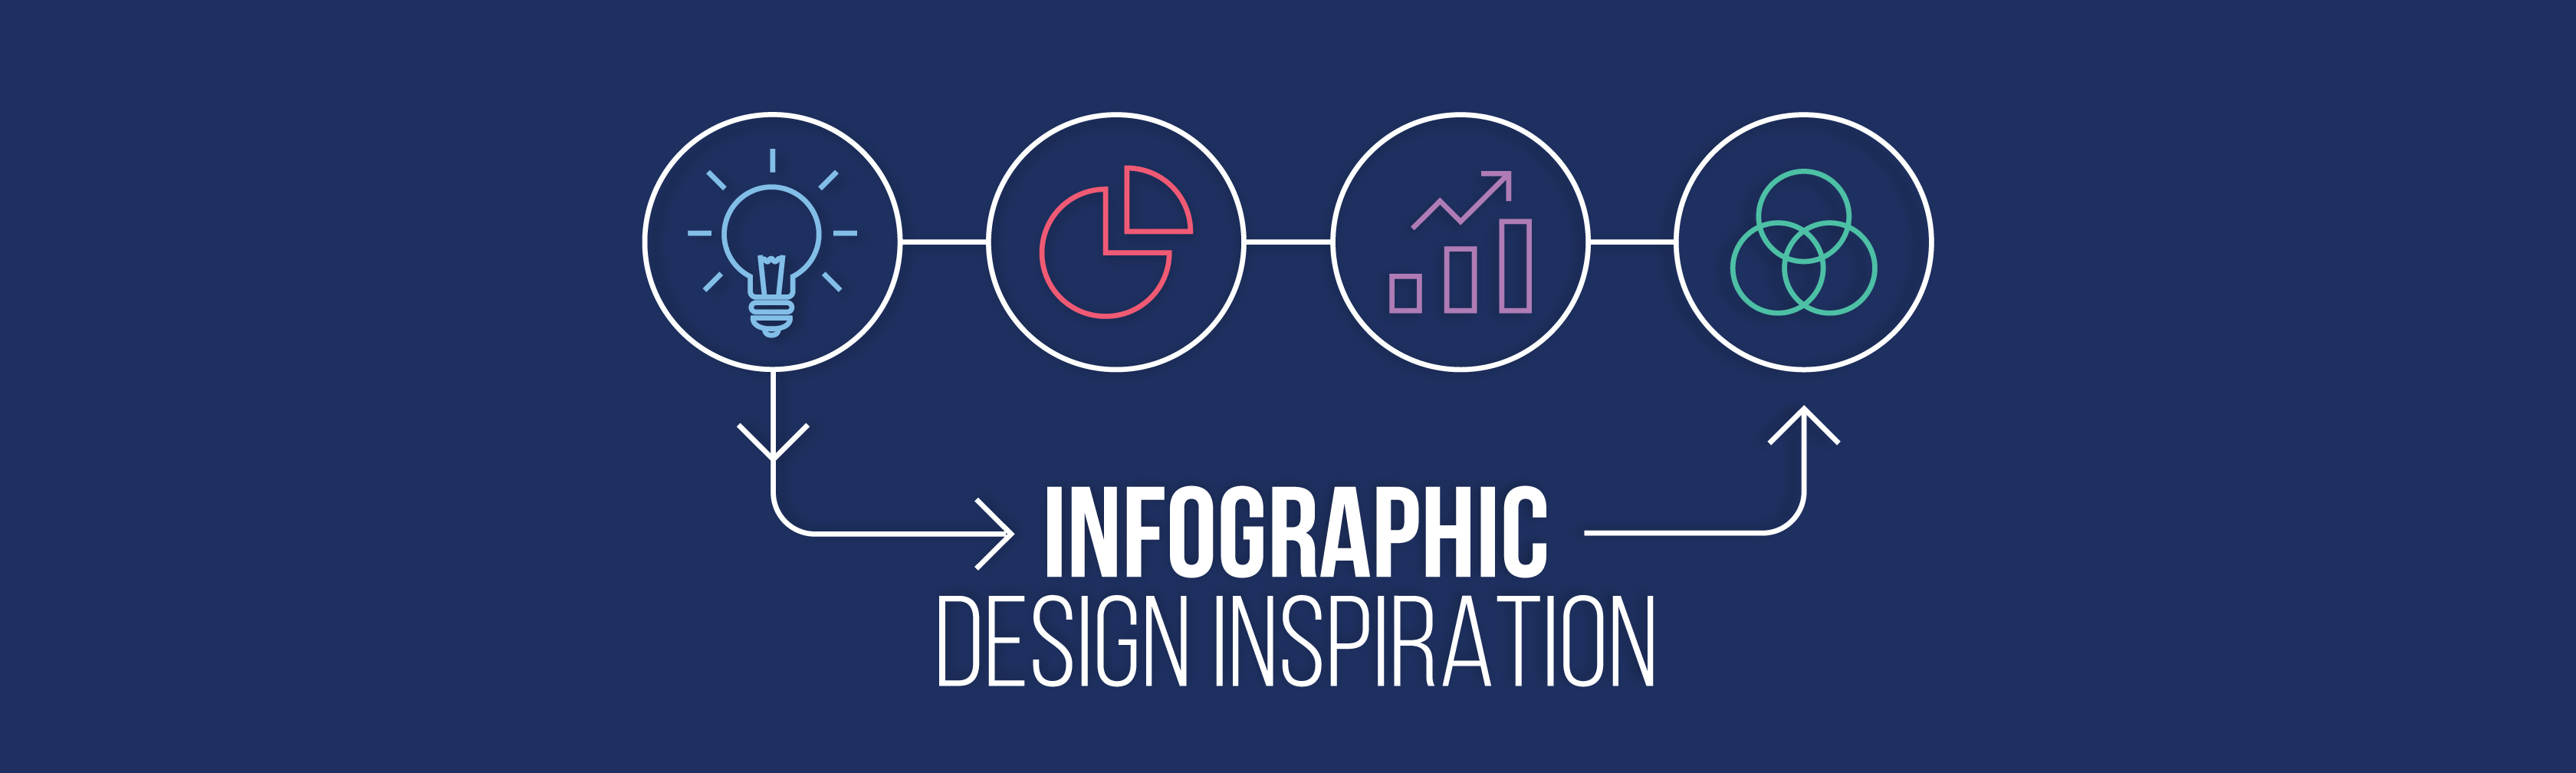 infographic design inspiration | biteable